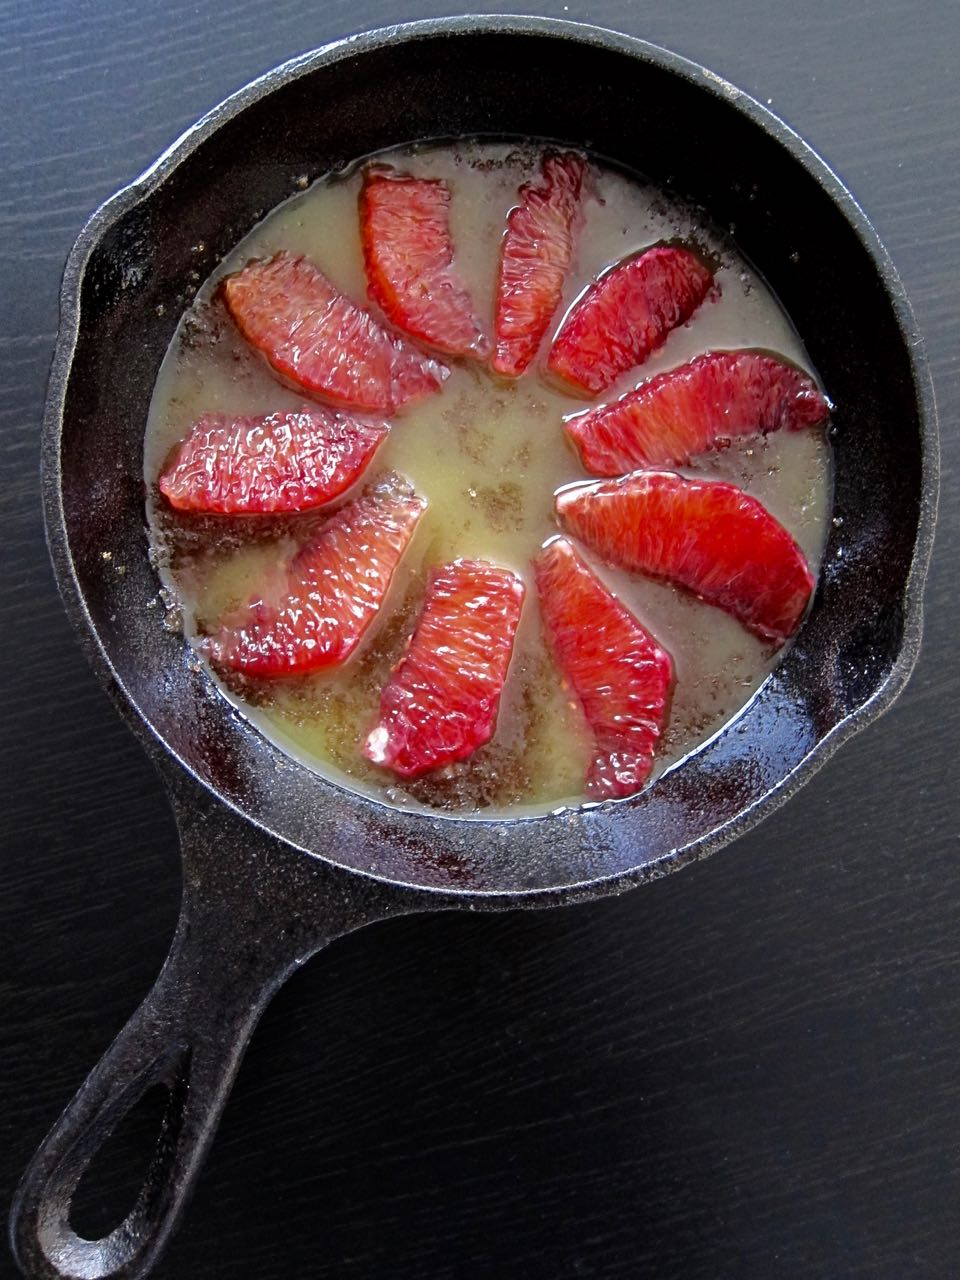 blood orange sections arranged in skillet